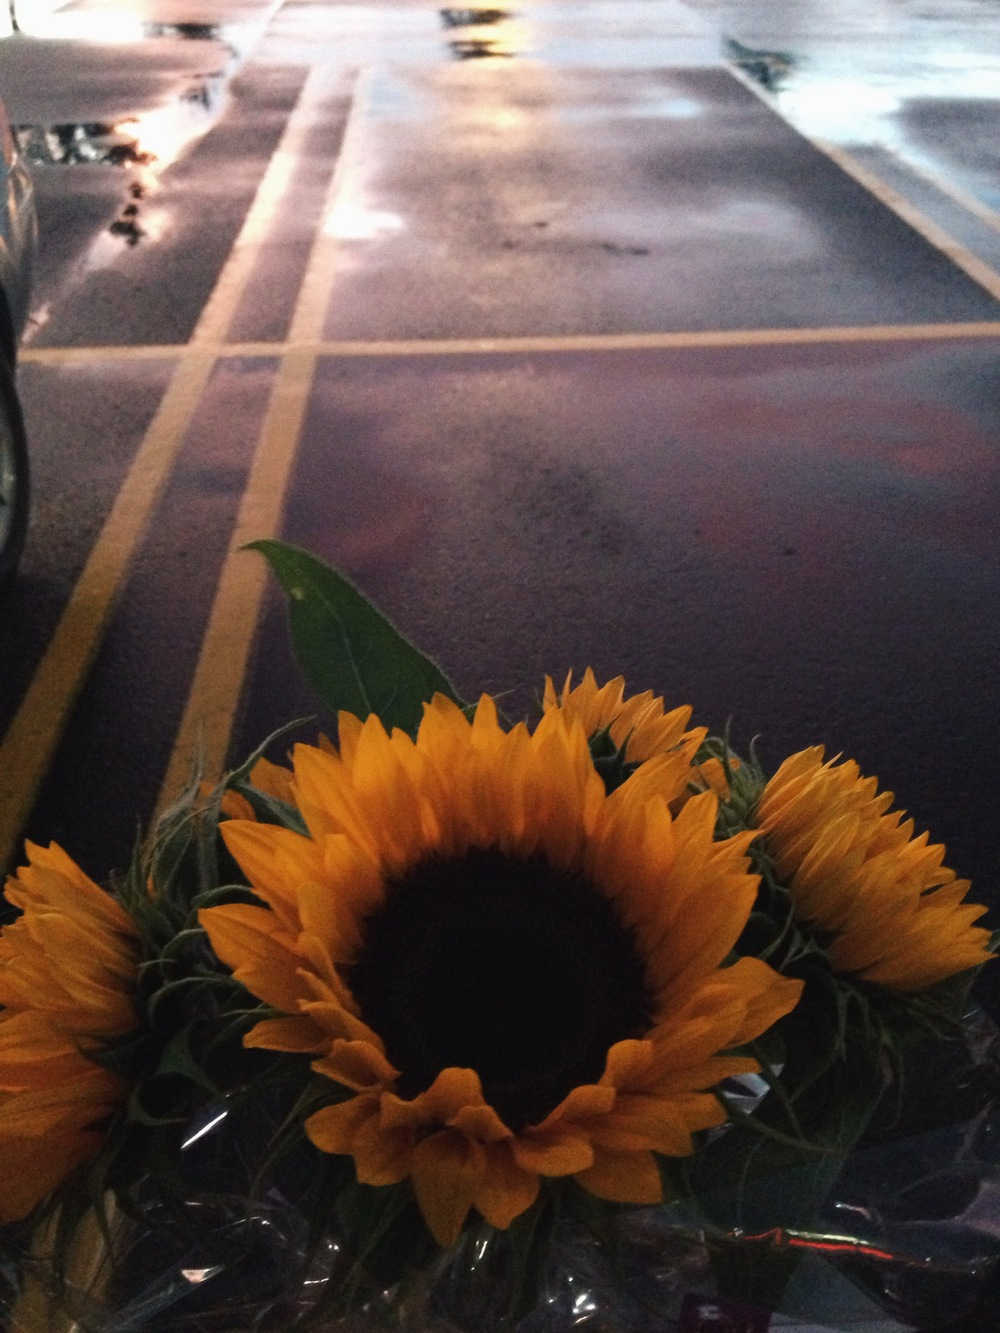 although you can't buy happiness, you can buy sunflowers. in my case, that's close enough.